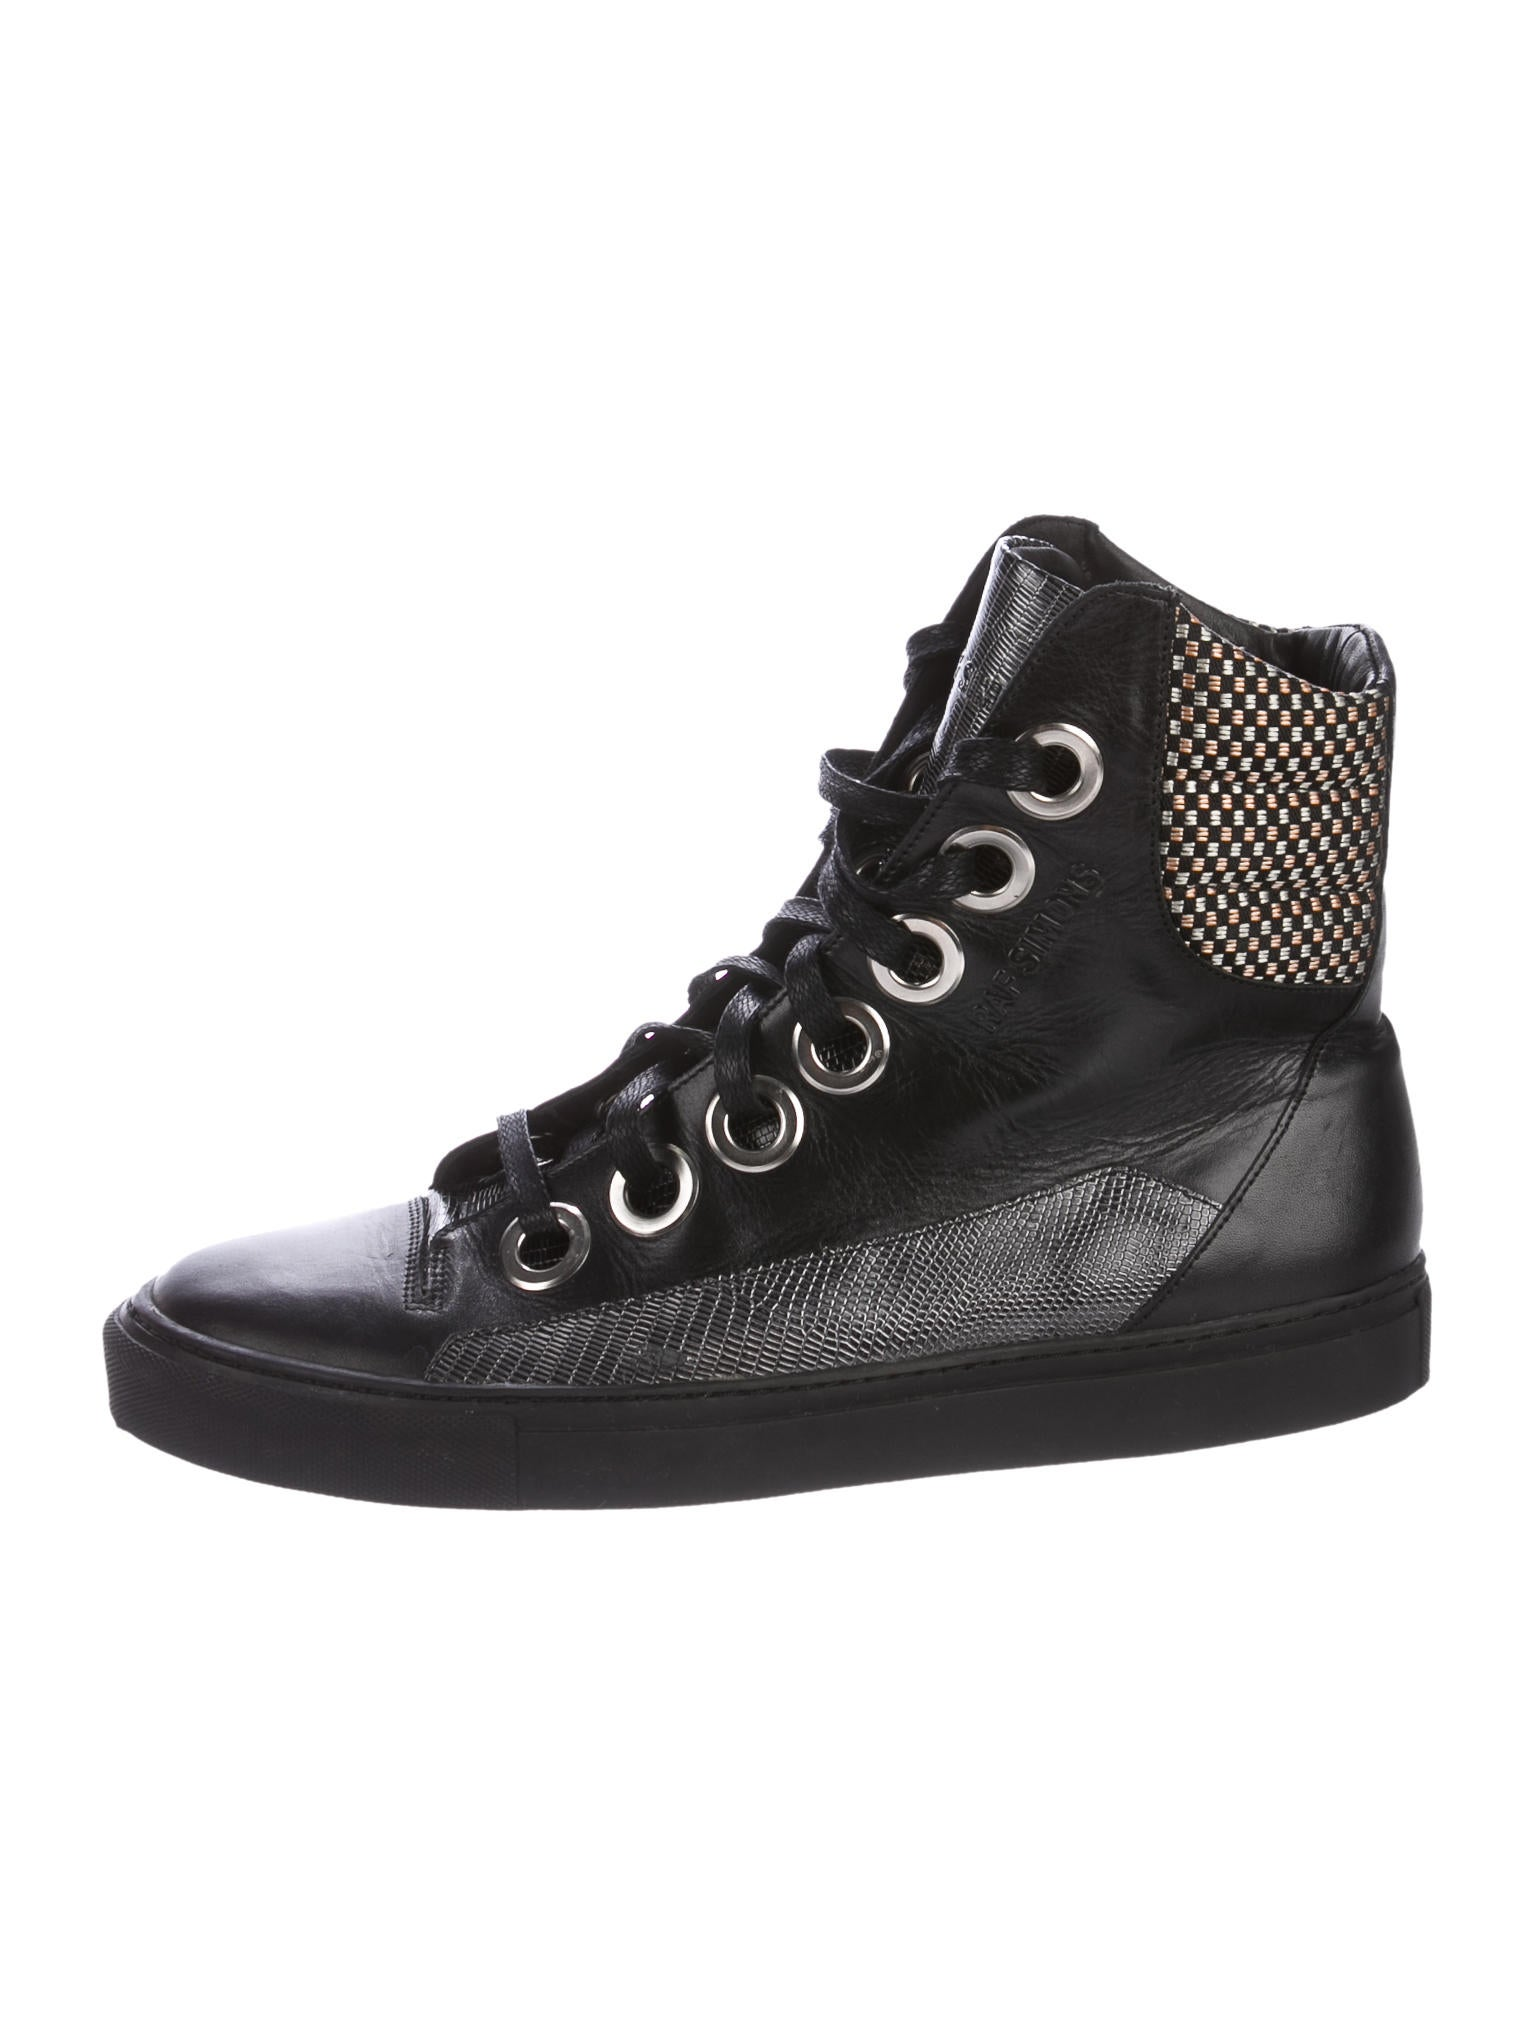 raf simons leather high top sneakers shoes raf20374. Black Bedroom Furniture Sets. Home Design Ideas